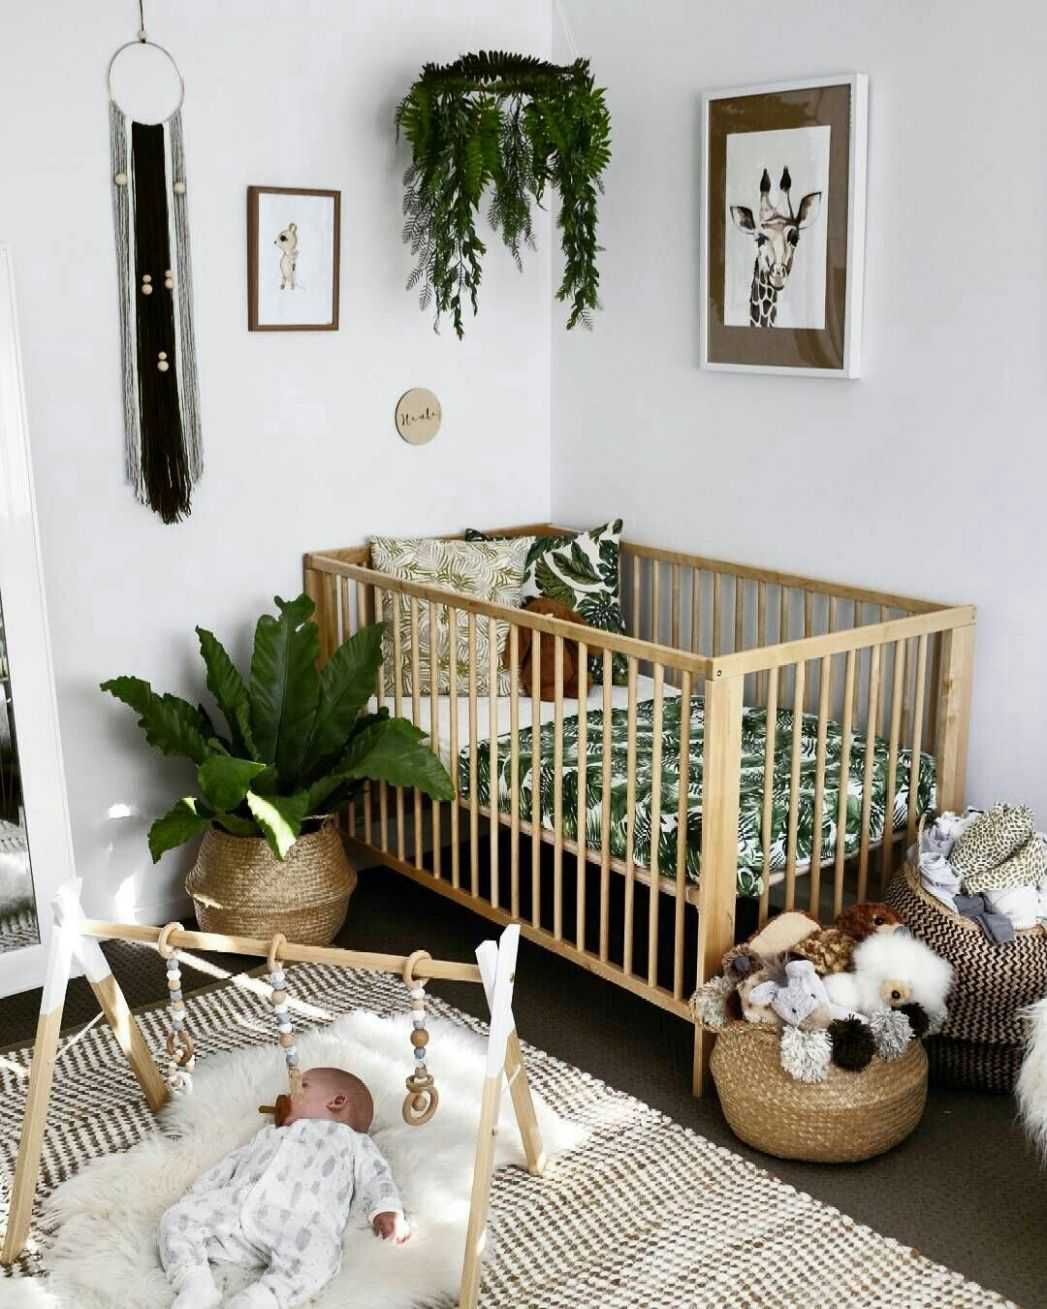 pinterest // @nikkysayshi ♡ | Baby nursery decor, Baby room decor ...